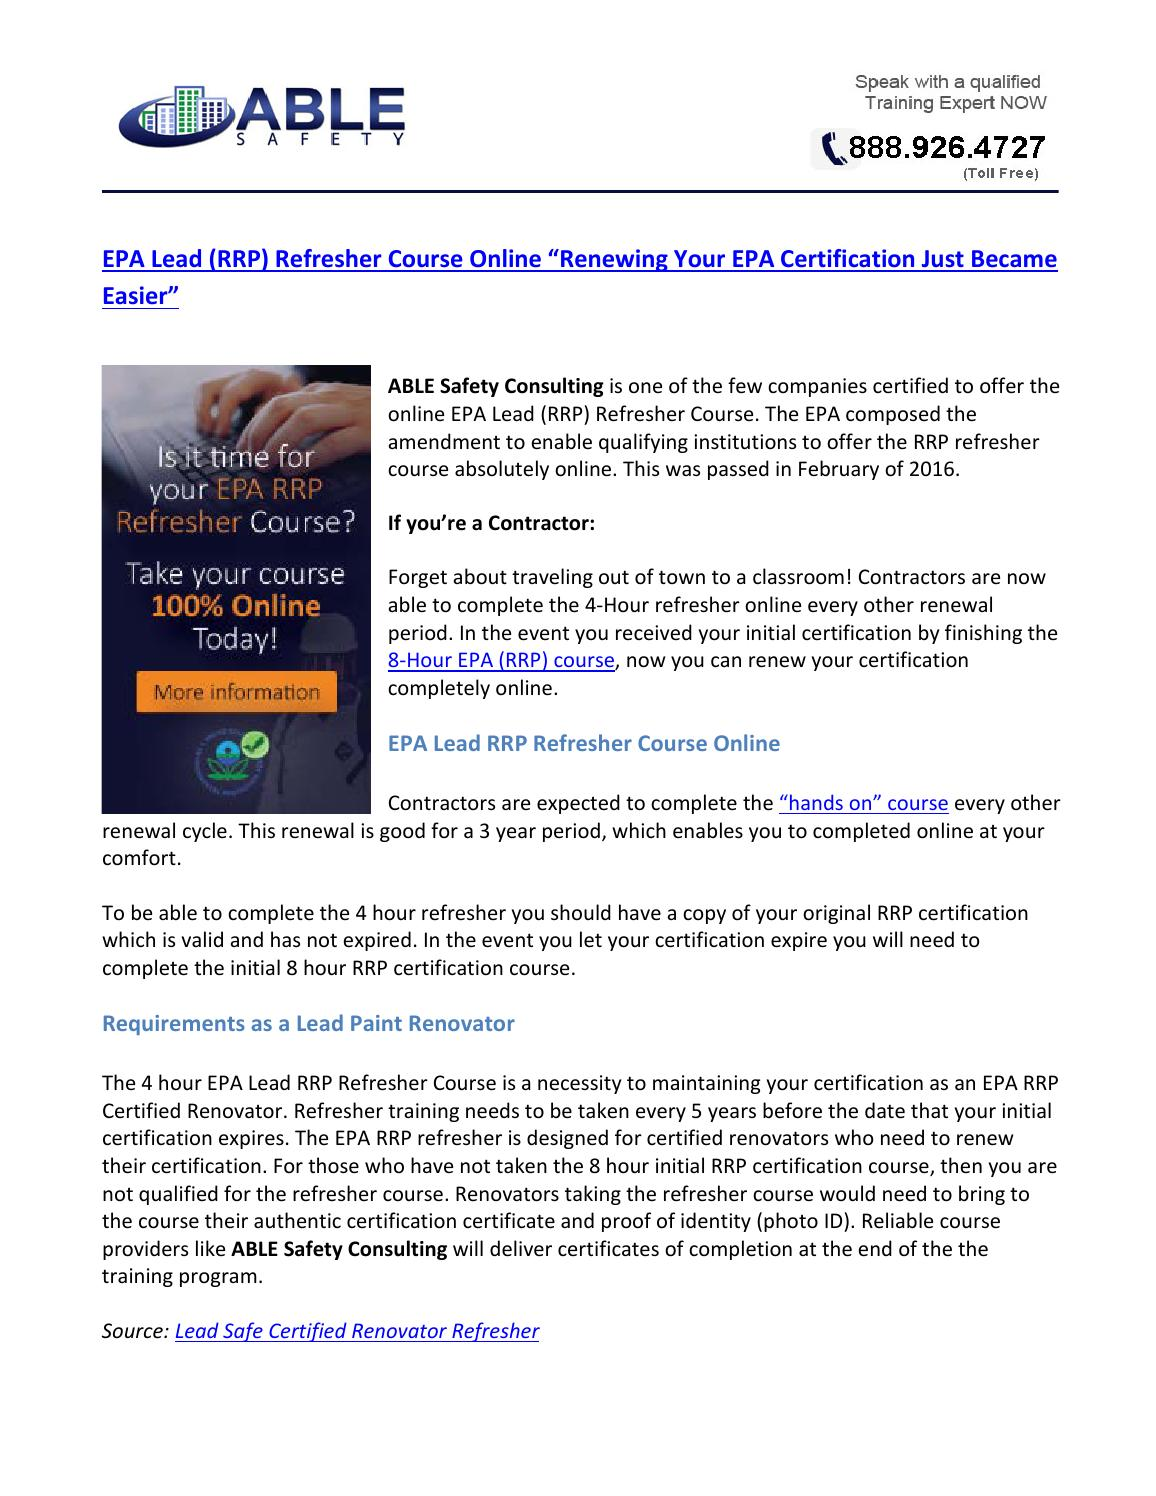 Epa Lead Rrp Refresher Course Online By John Madrigal Issuu